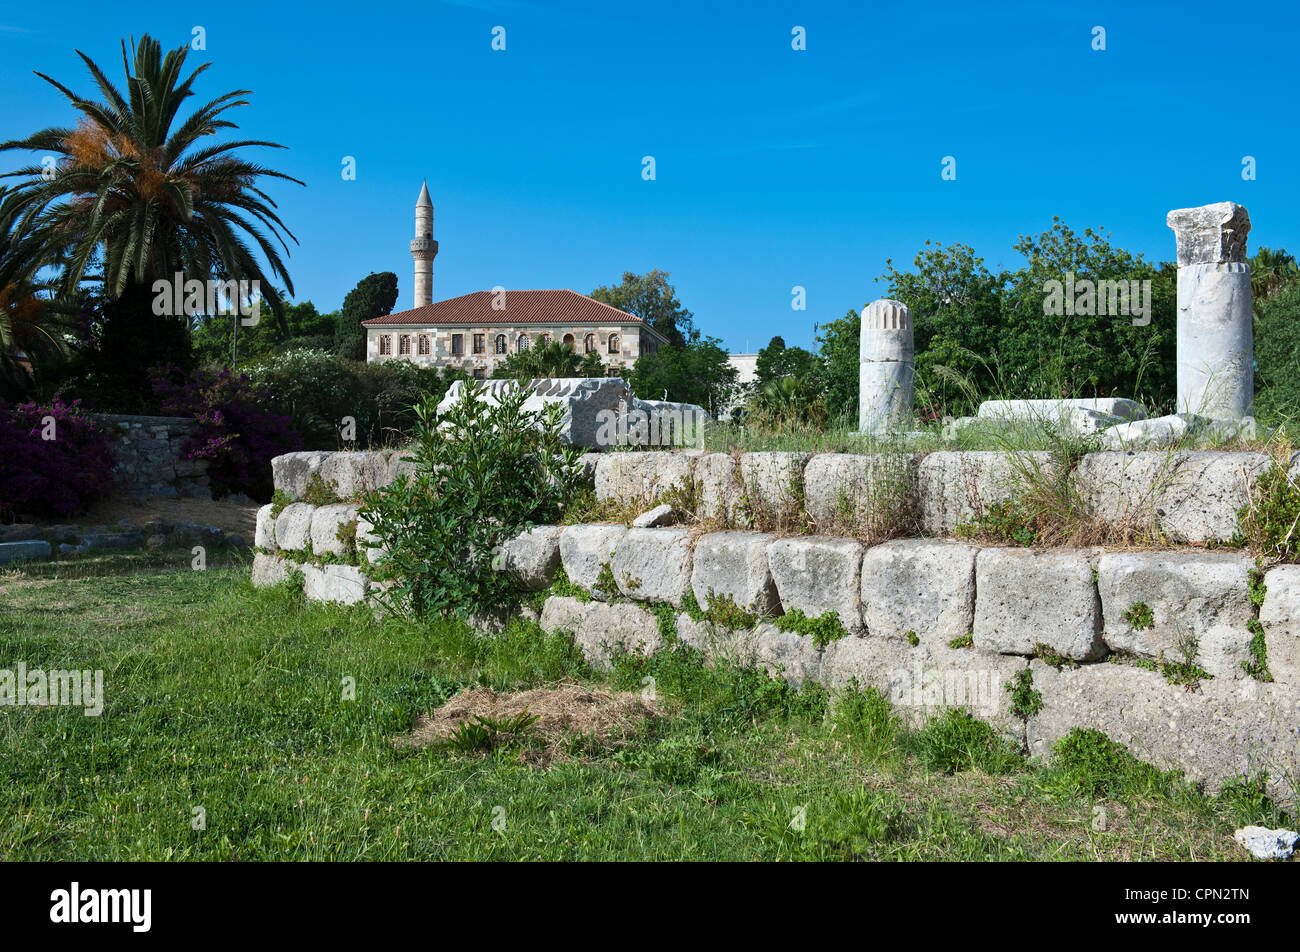 Europe Greece, Dodecanese, Kos, the archeological site of the Harbour Quarter - Stock Image